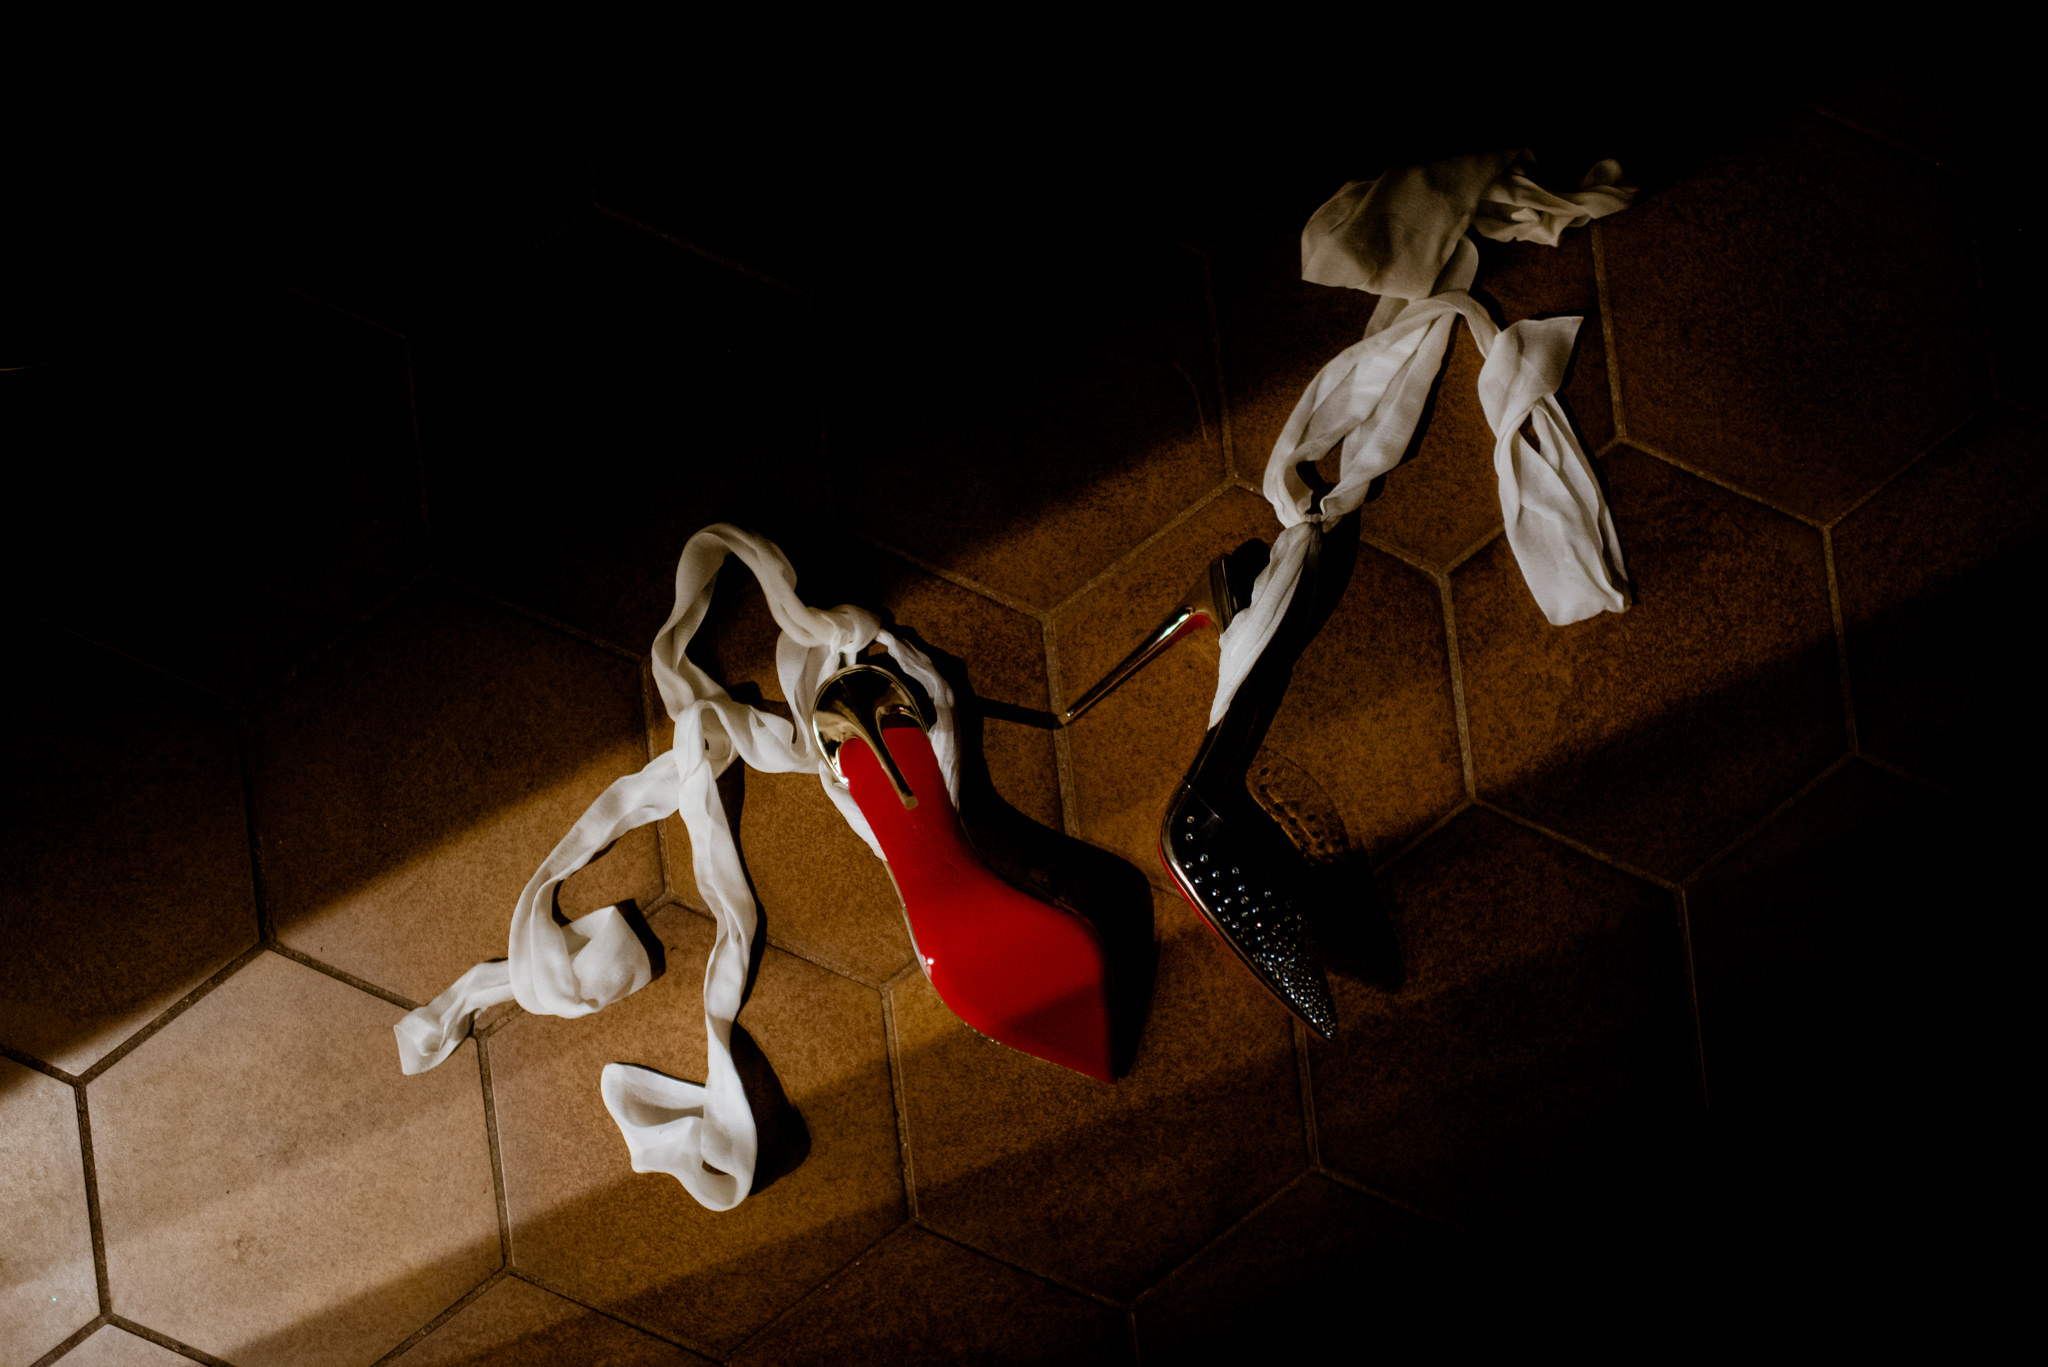 Christian Louboutin high-heels lay on a tiled floor in a ray of light